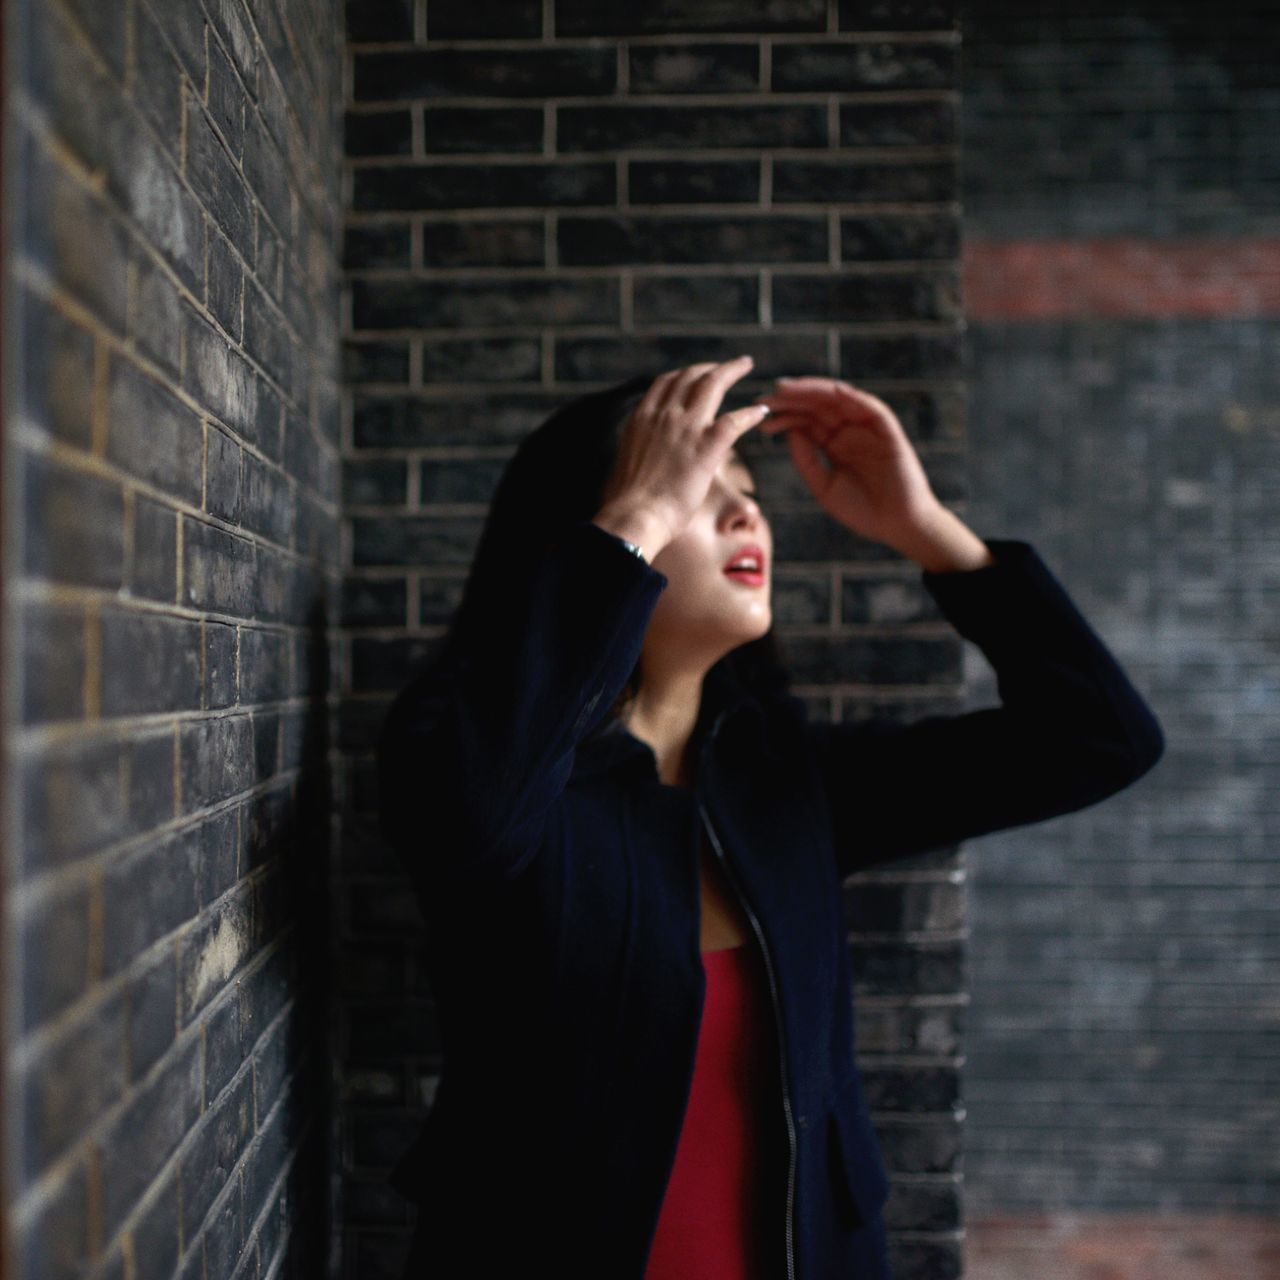 Beautiful stock photos of schmetterling, brick wall, one person, young adult, people